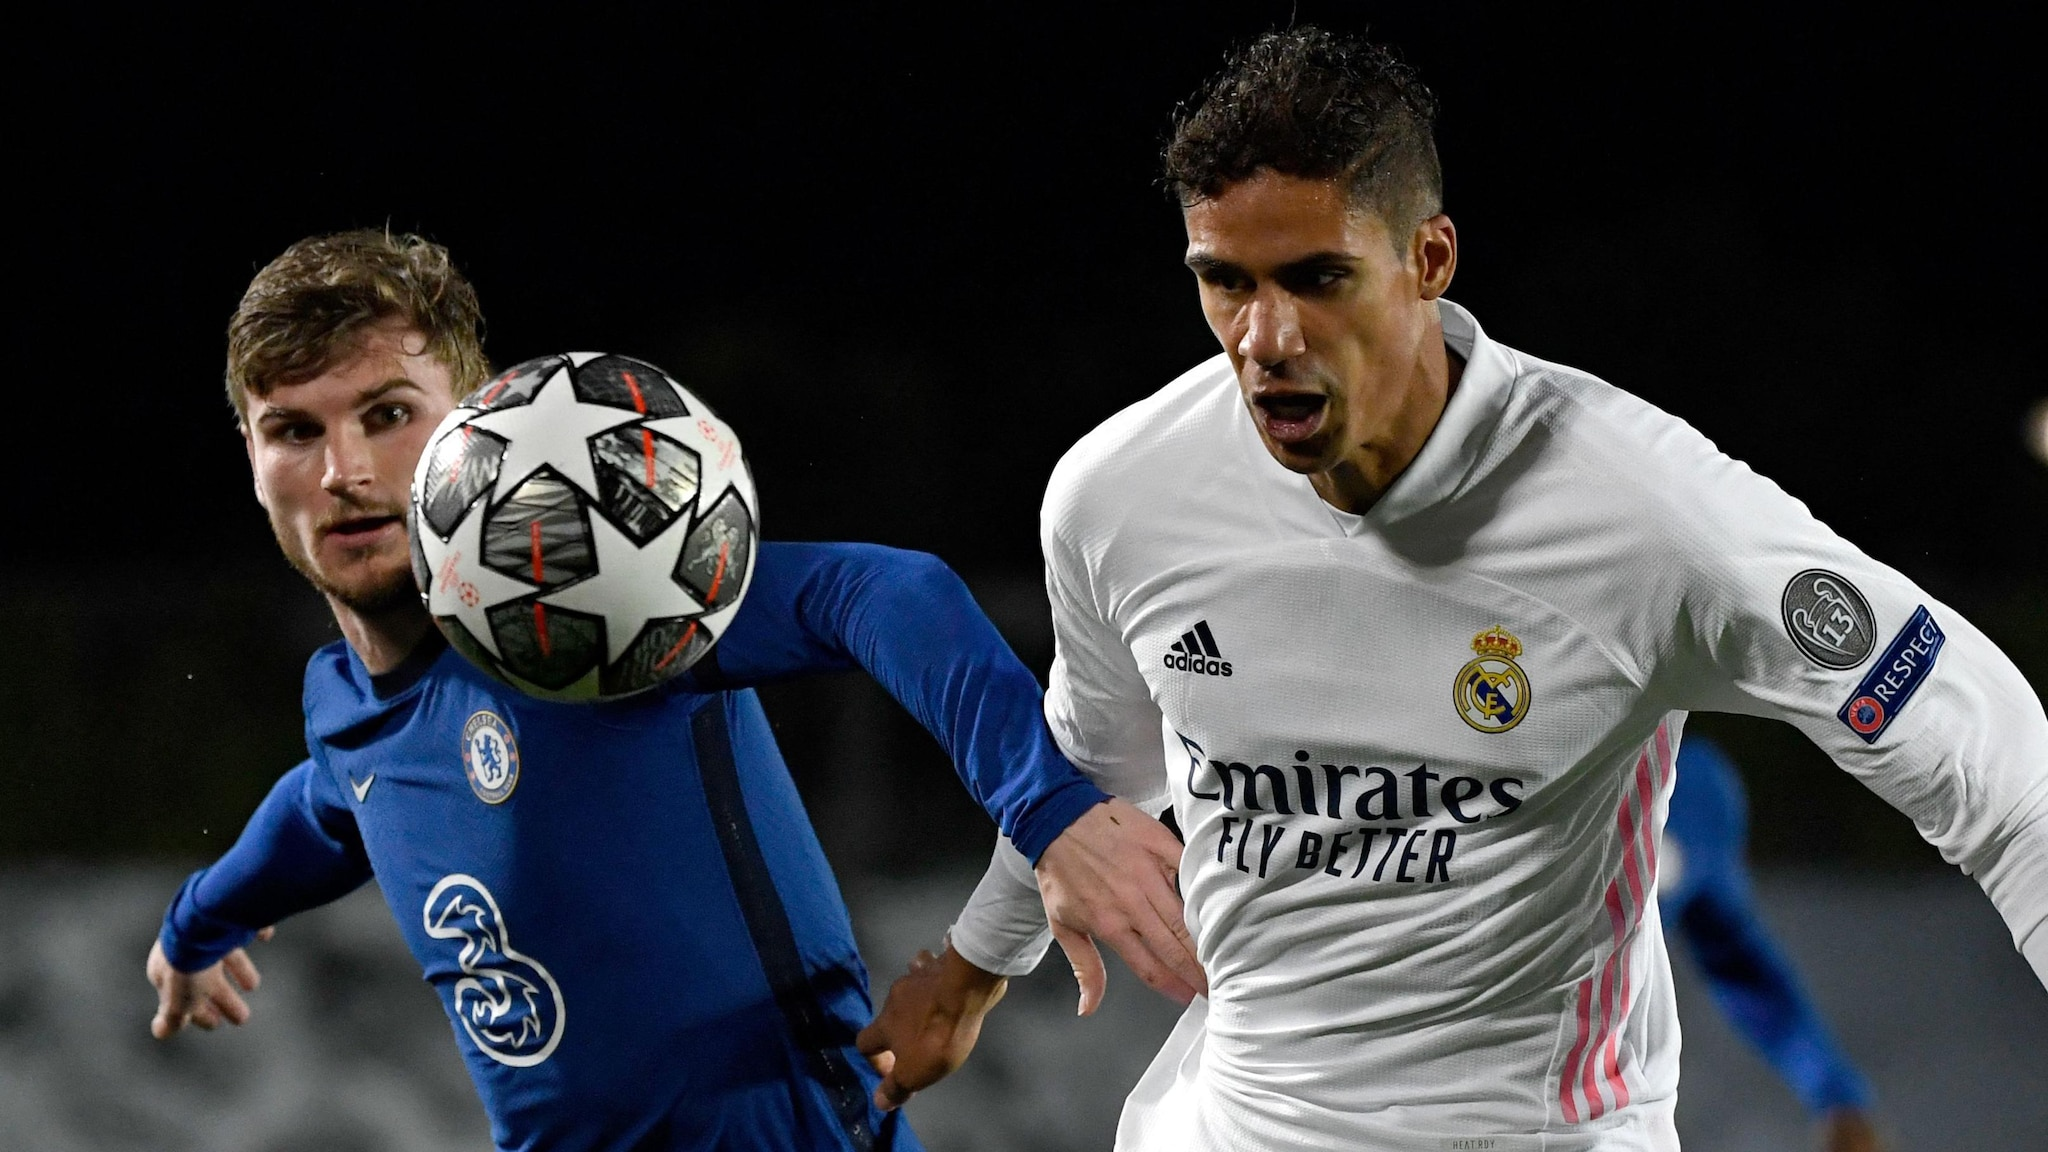 Chelsea-Real Madrid | Chelsea vs Real Madrid: UEFA Champions League  background, form guide, previous meetings | UEFA Champions League | UEFA.com